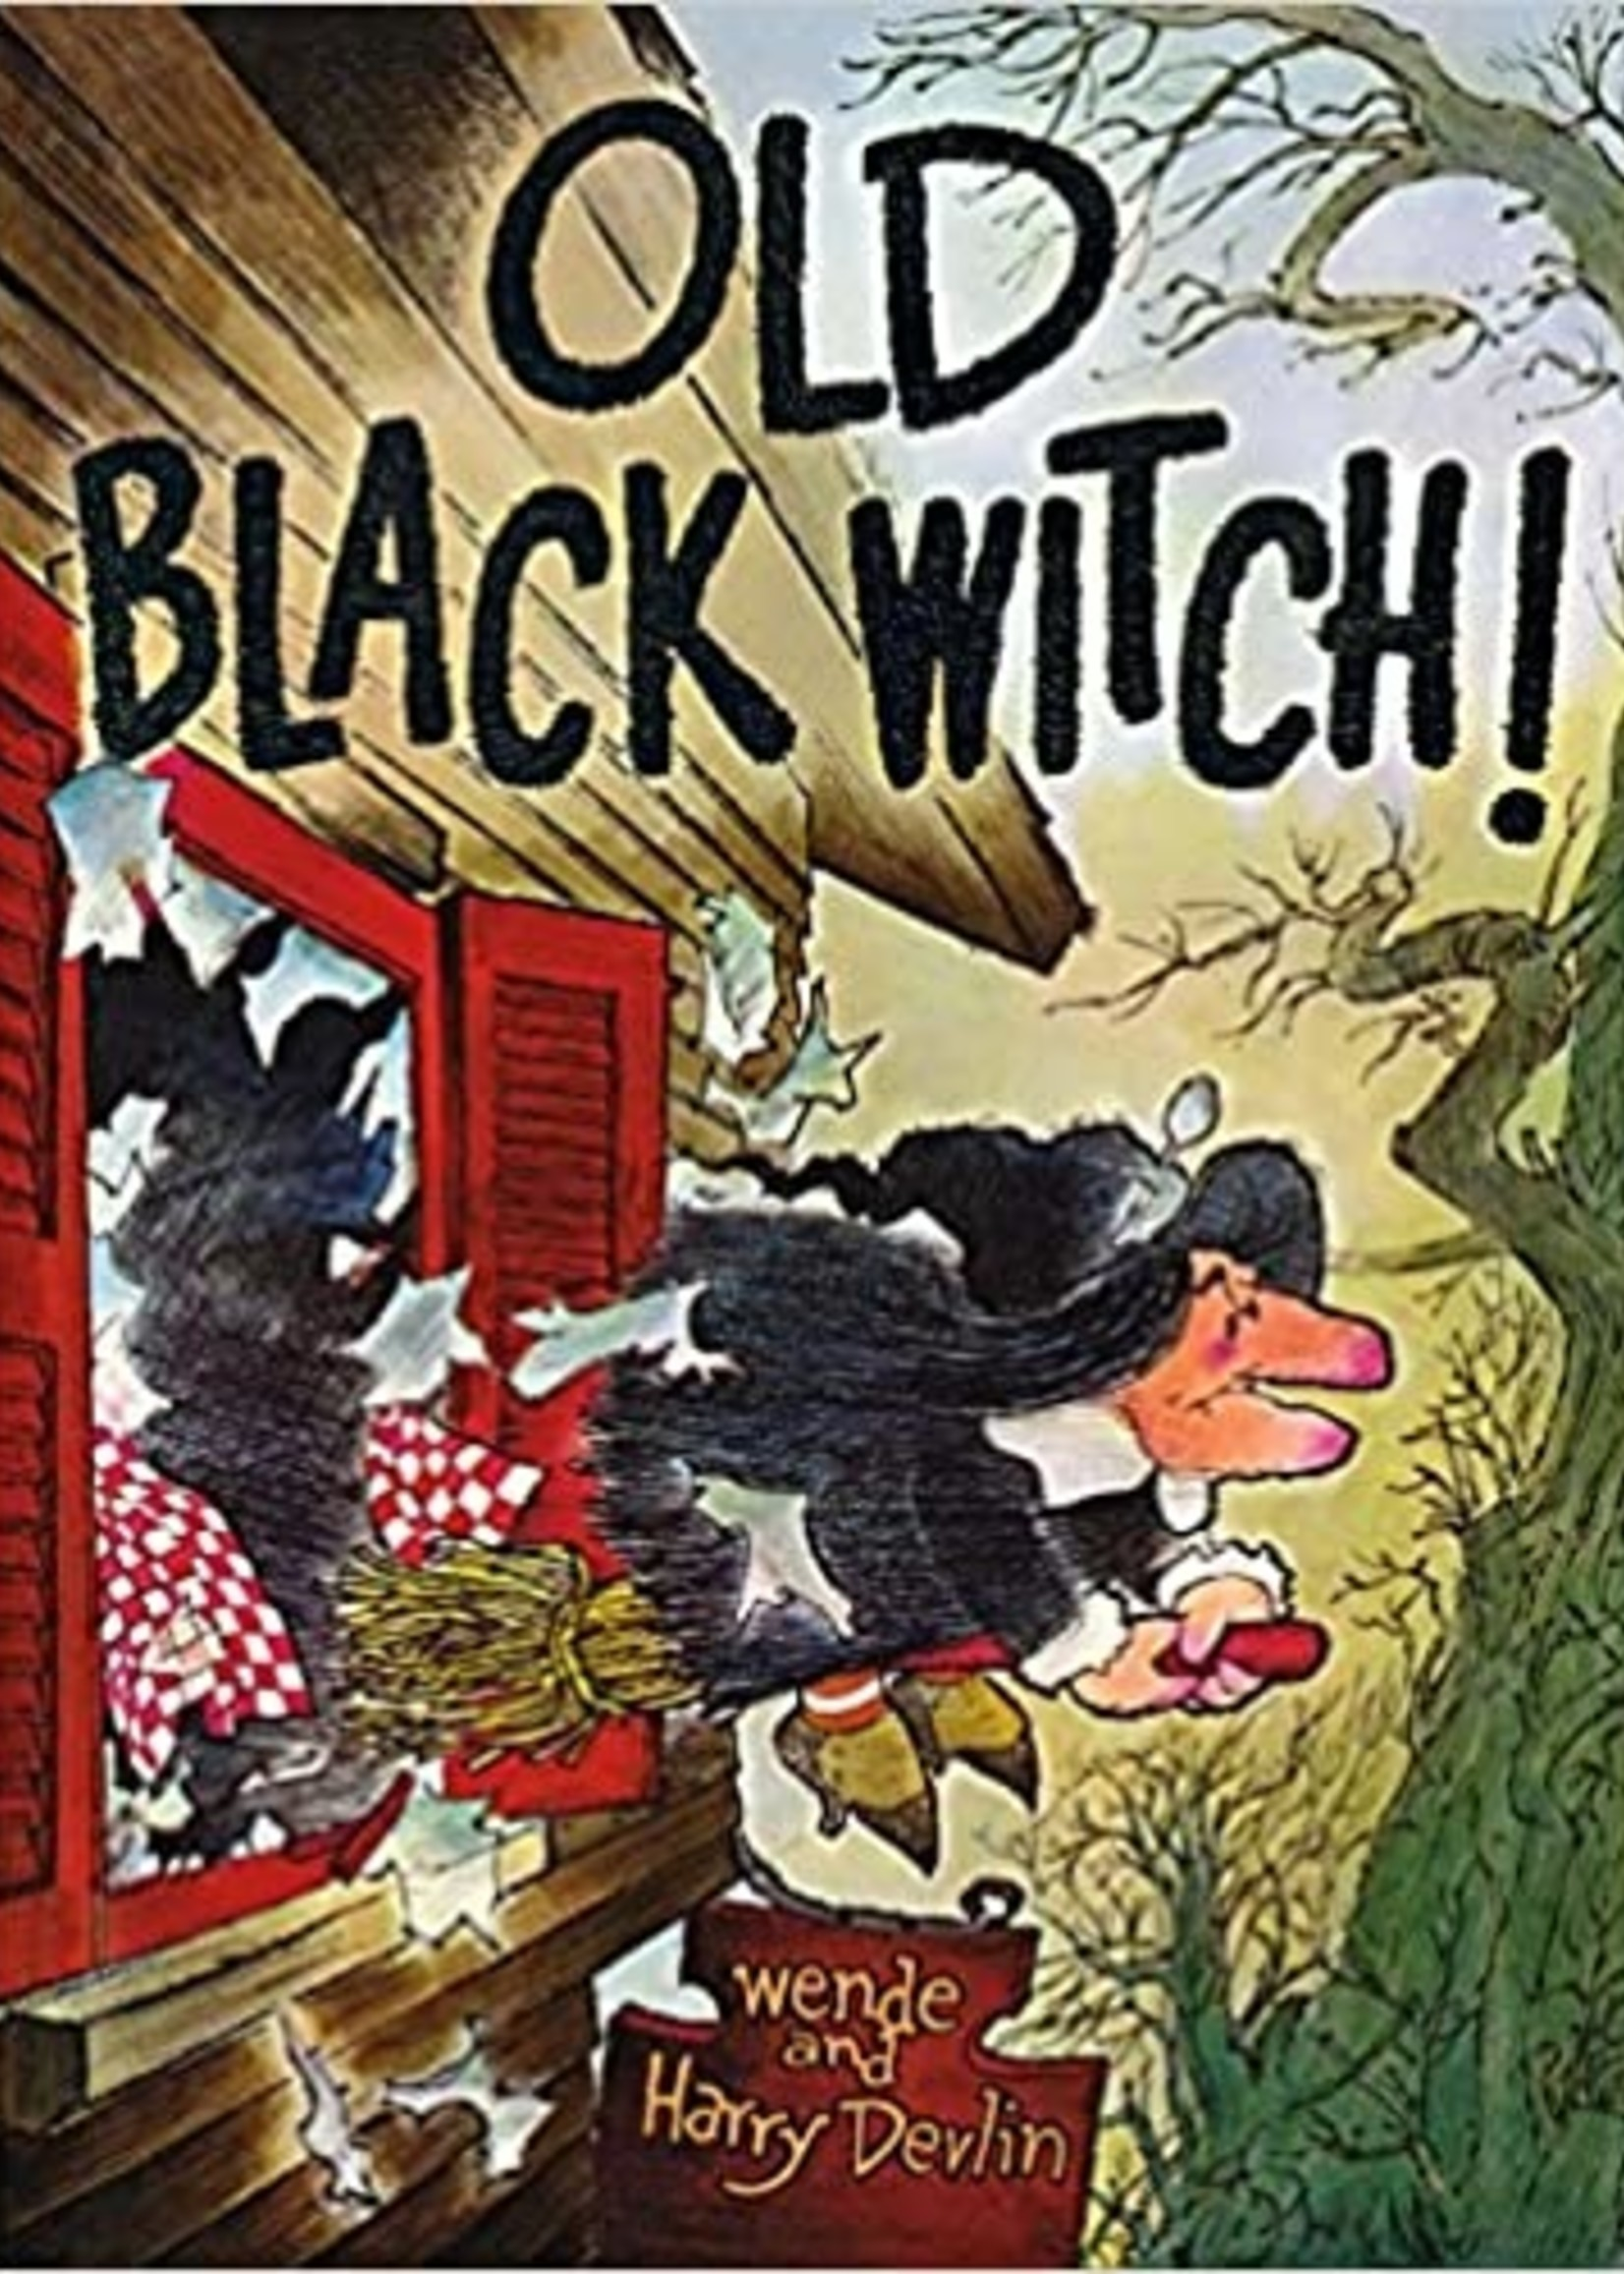 Old Black Witch! - Hardcover